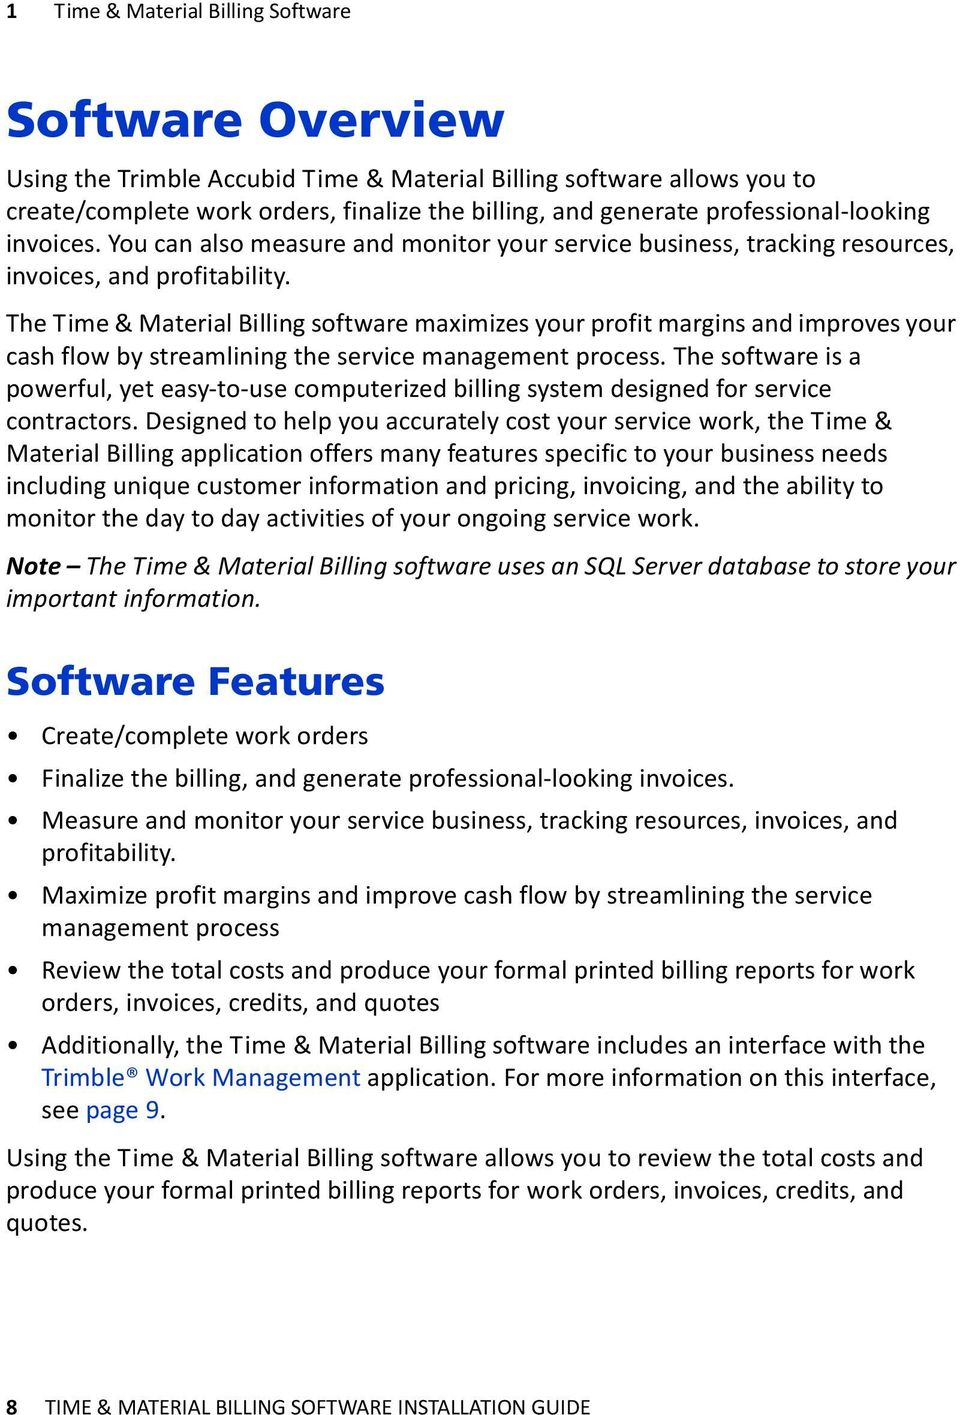 Installation Guide Trimble Accubid Time Material Billing Software - Create invoice software for service business